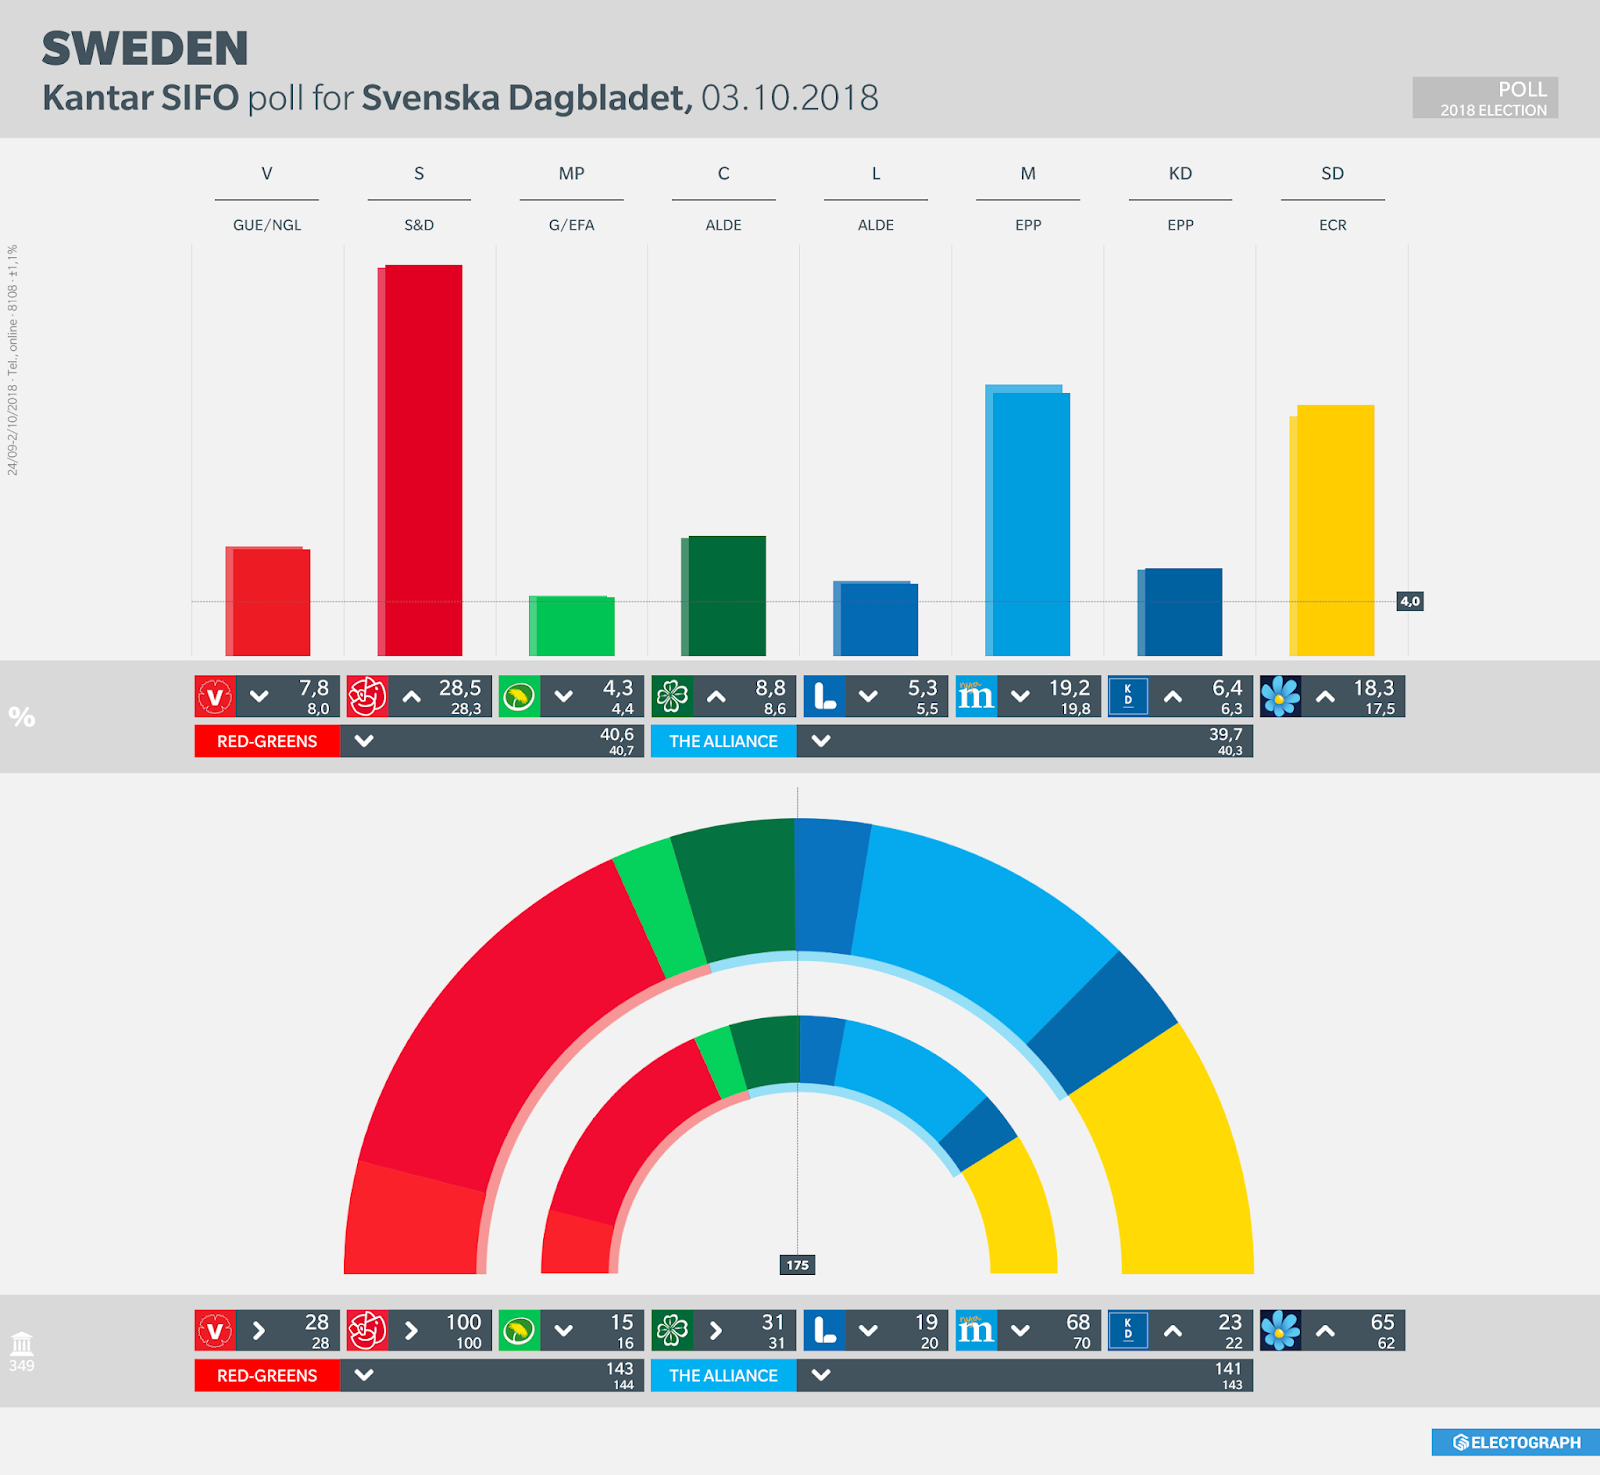 SWEDEN: Kantar SIFO poll chart for Svenska Dagbladet, October 2018